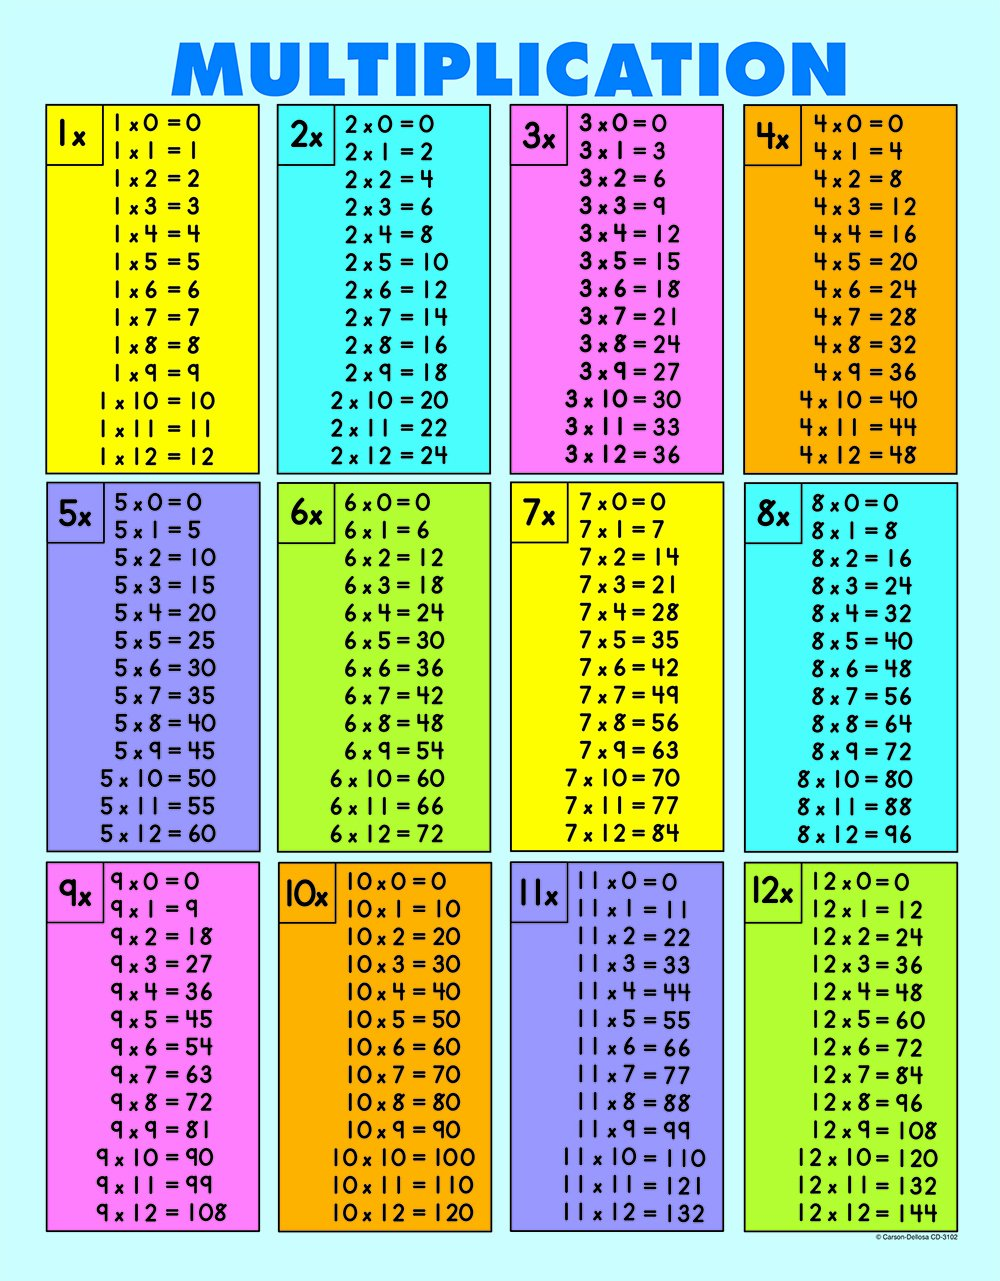 Multiplication facts chart multiplication chart intended for Table multiplication